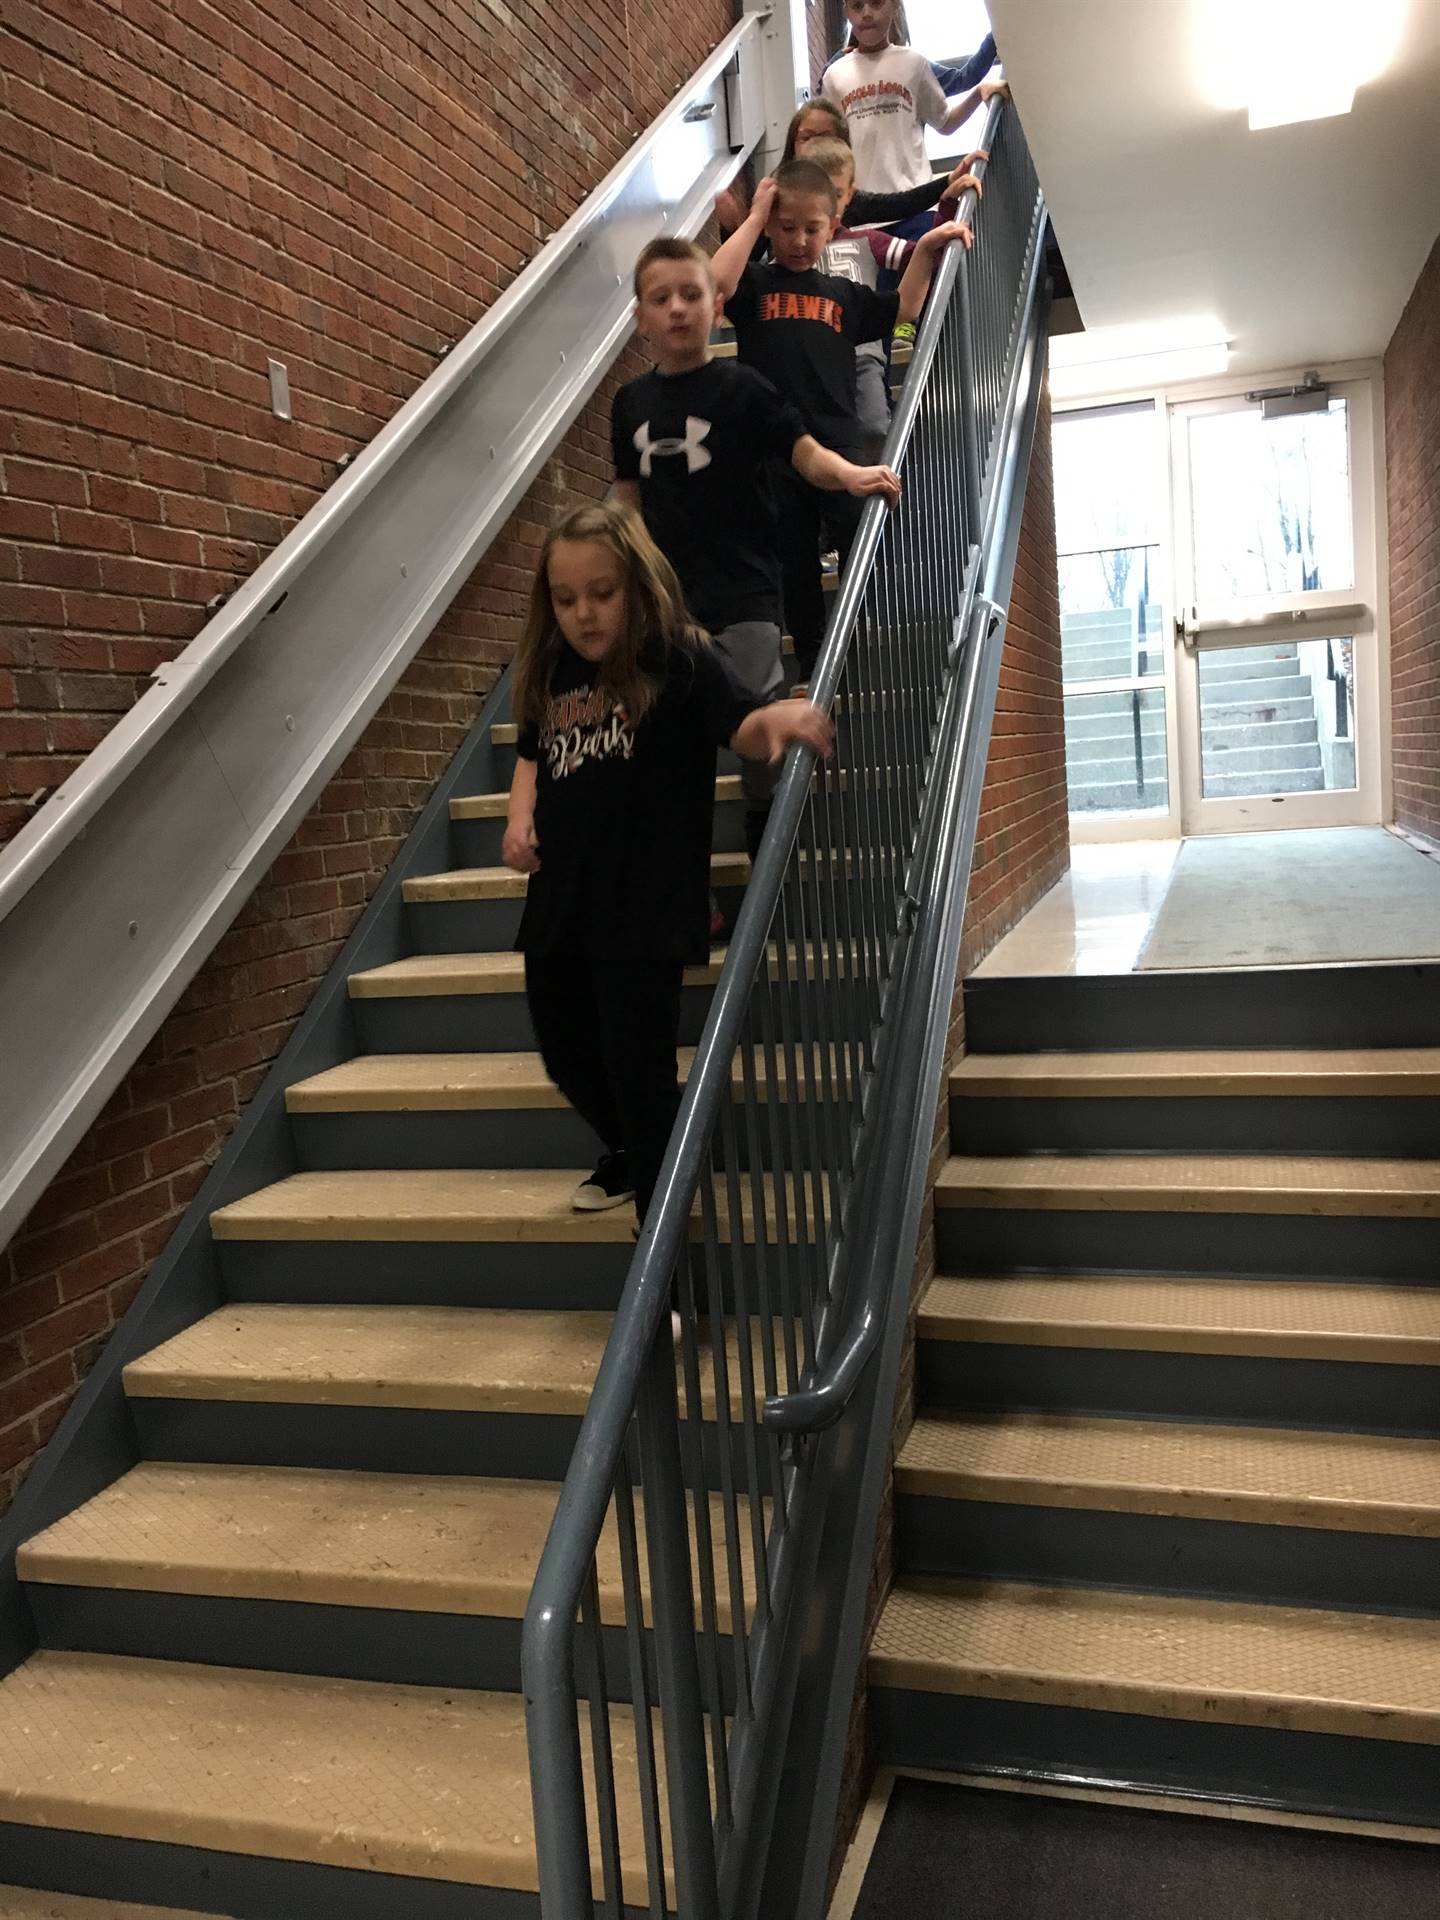 Students walking the steps